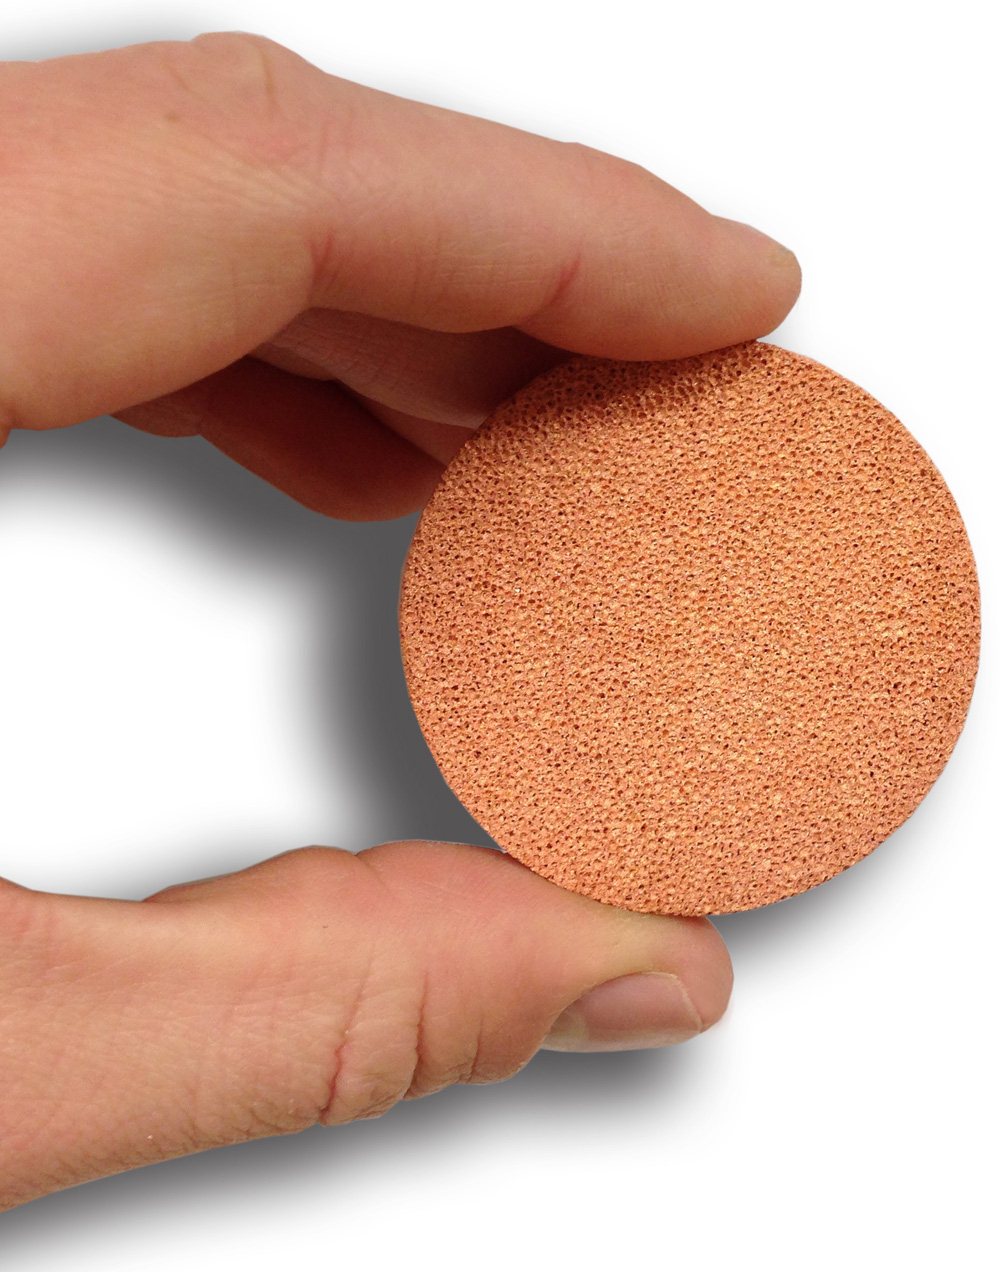 Goodfellow_Microporous_copper_foam.jpeg.jpg